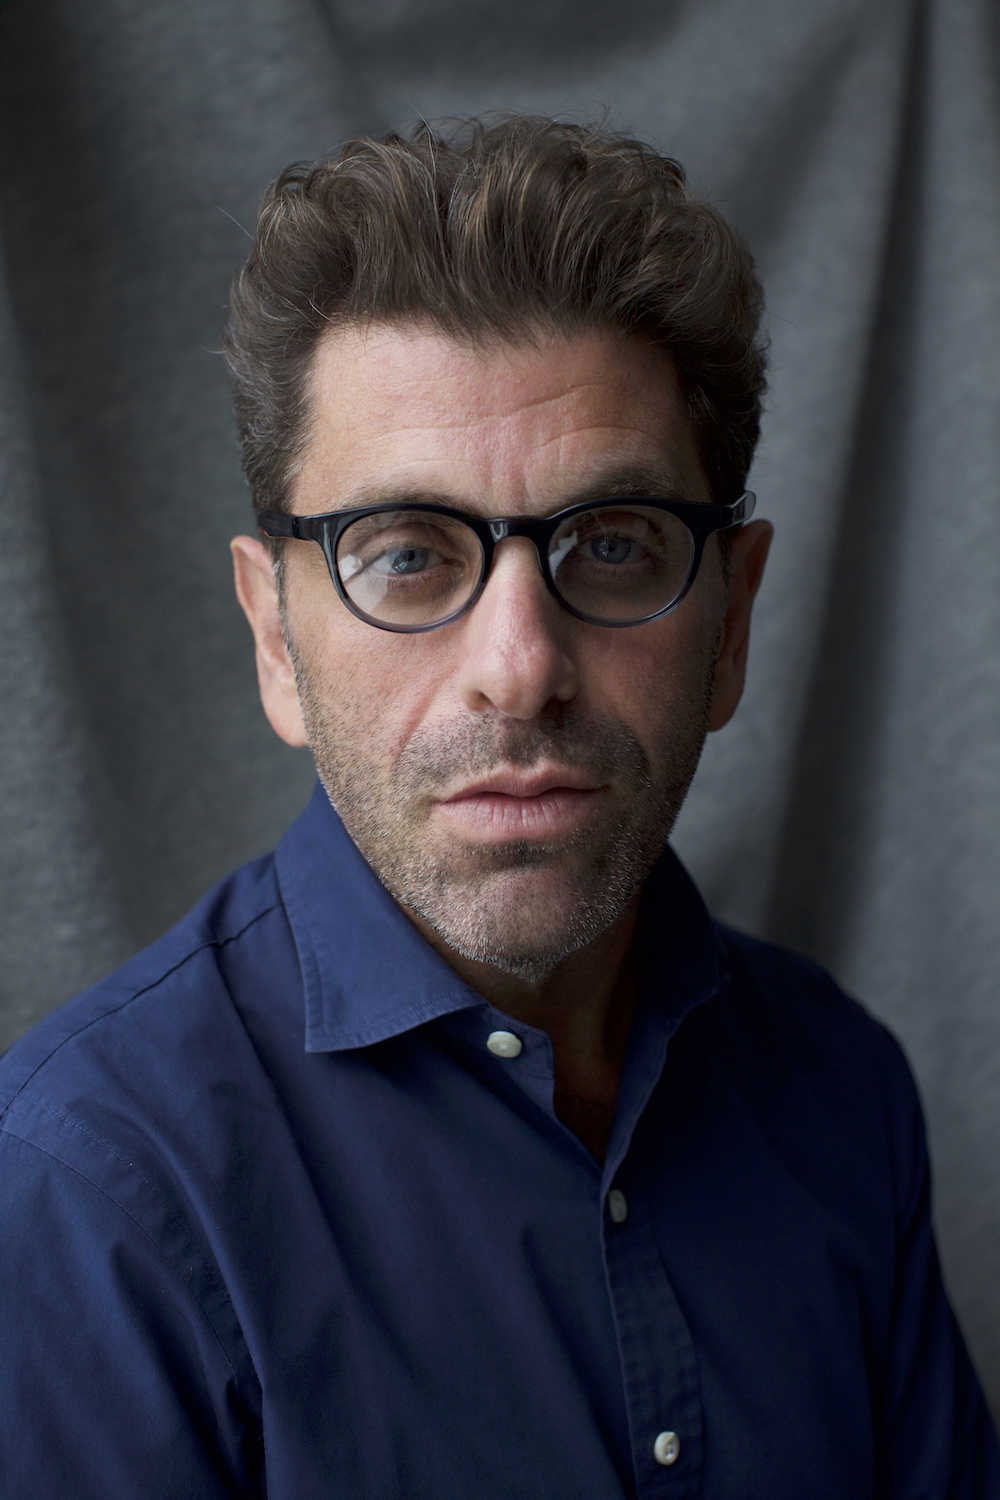 Eugene Jarecki - Eugene Jarecki is an Emmy and Peabody award-winning director of dramatic and documentary subjects who has twice won the Grand Jury Prize at the Sundance Film Festival, first in 2005 for Why We Fight(2005) and again in 2012 for The House I Live In(2012)A public intellectual on domestic and international affairs, Jarecki has been named a Soros Justice Fellow at the Open Society Institute and a Senior Fellow at Brown University's Watson Institute for International Studies. He has appeared on 'The Daily Show with Jon Stewart', 'Charlie Rose', 'The Colbert Report', 'FOX News', CNN, and many other outlets, while also being featured in the New York Times, the Washington Post, the Financial Times, the New Yorker, Vanity Fair, and GQ, among others. As founder and executive director of The Eisenhower Project, a public policy group dedicated to promoting greater public understanding of the forces that shape U.S. foreign and defense policy, he published the 2008 book 'The American Way of War: Guided Missiles, Misguided Men, and a Republic in Peril' (Simon & Schuster). He is also the creator of 'Move Your Money', an online video that sparked a national movement in 2010 to shift personal banking away from